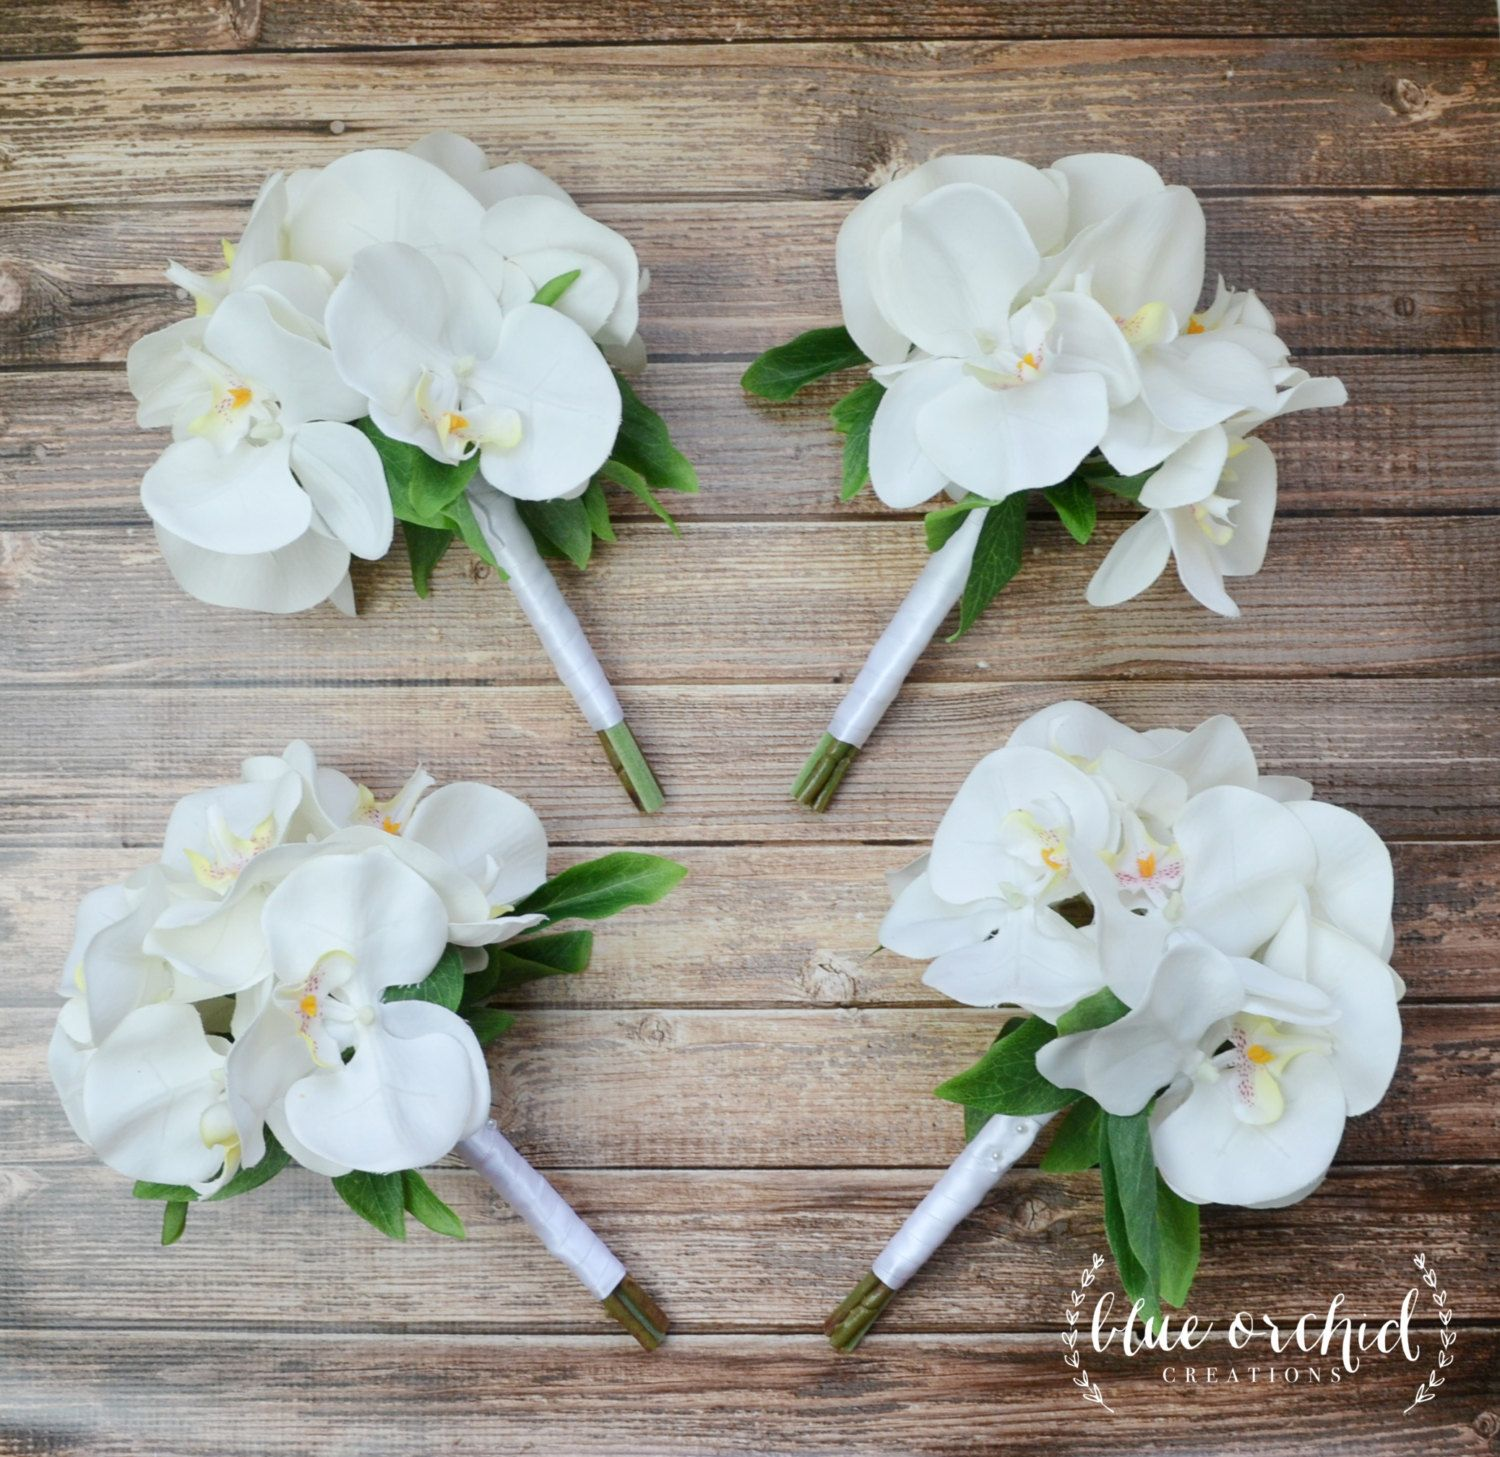 Silk Wedding Bouquets Orchids : Bridesmaid bouquet white orchid